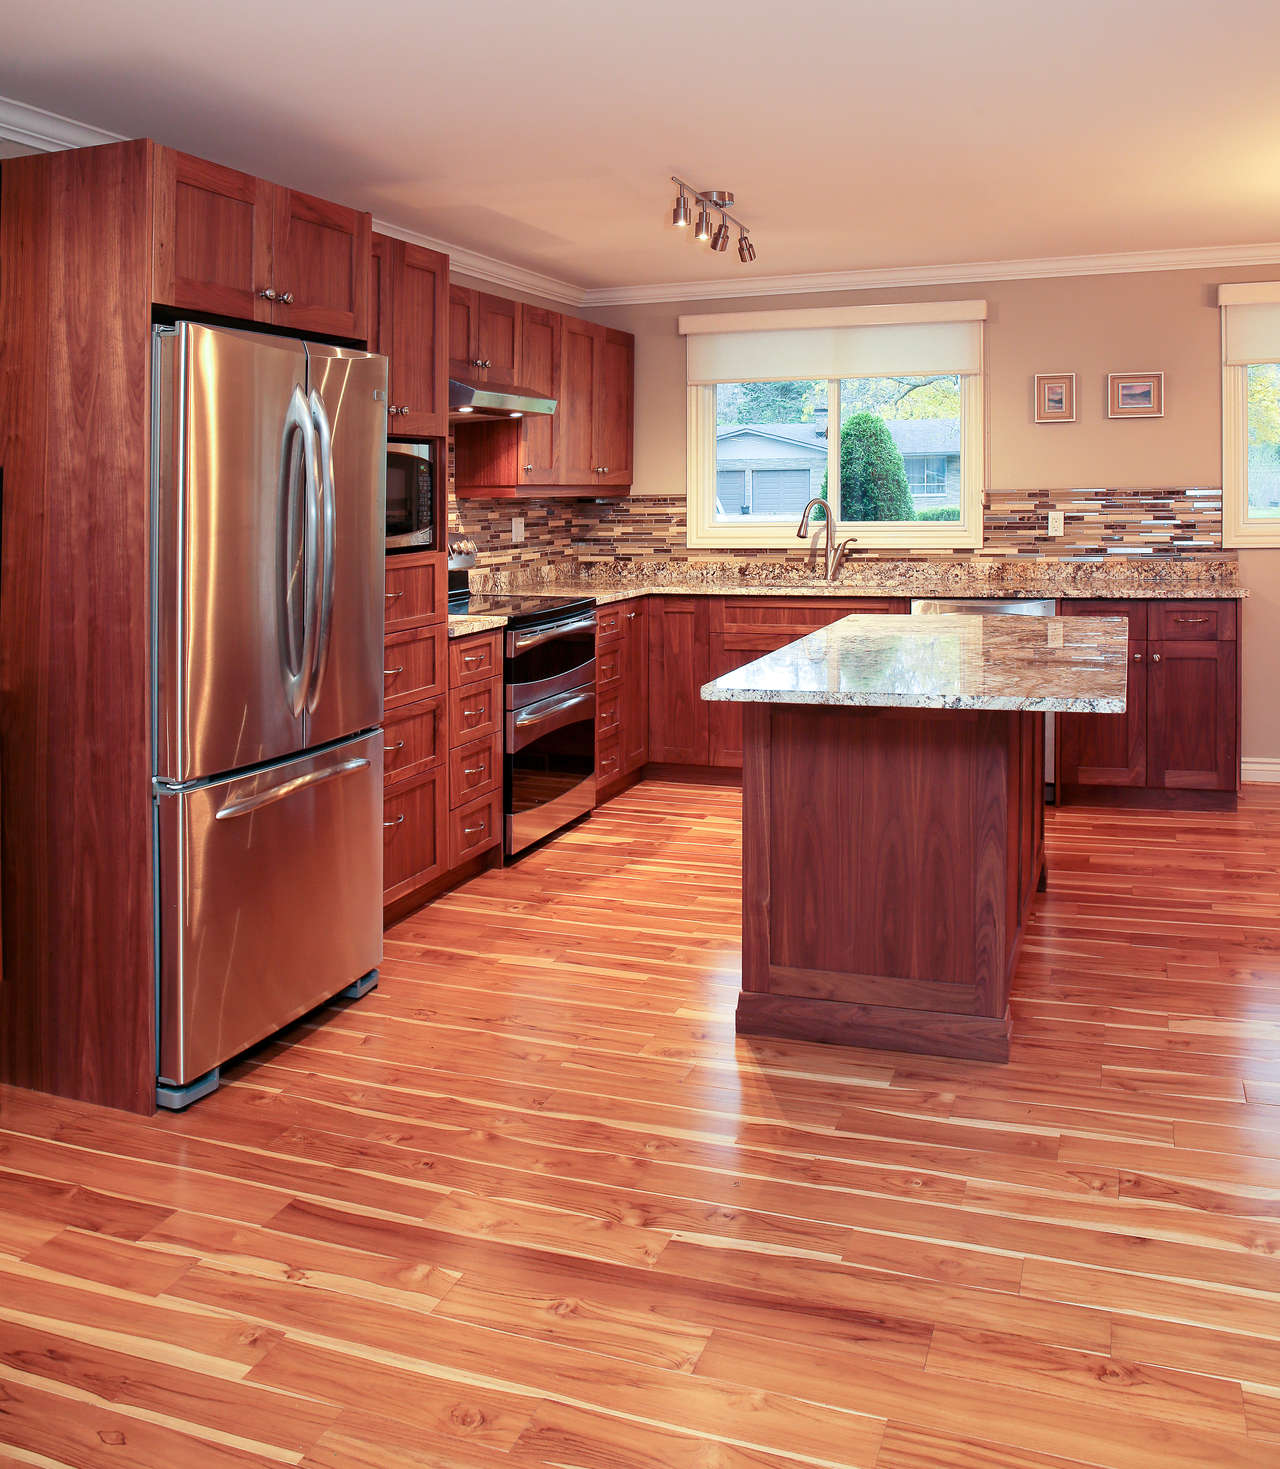 Kitchen Cabinets London Ontario: Transitional